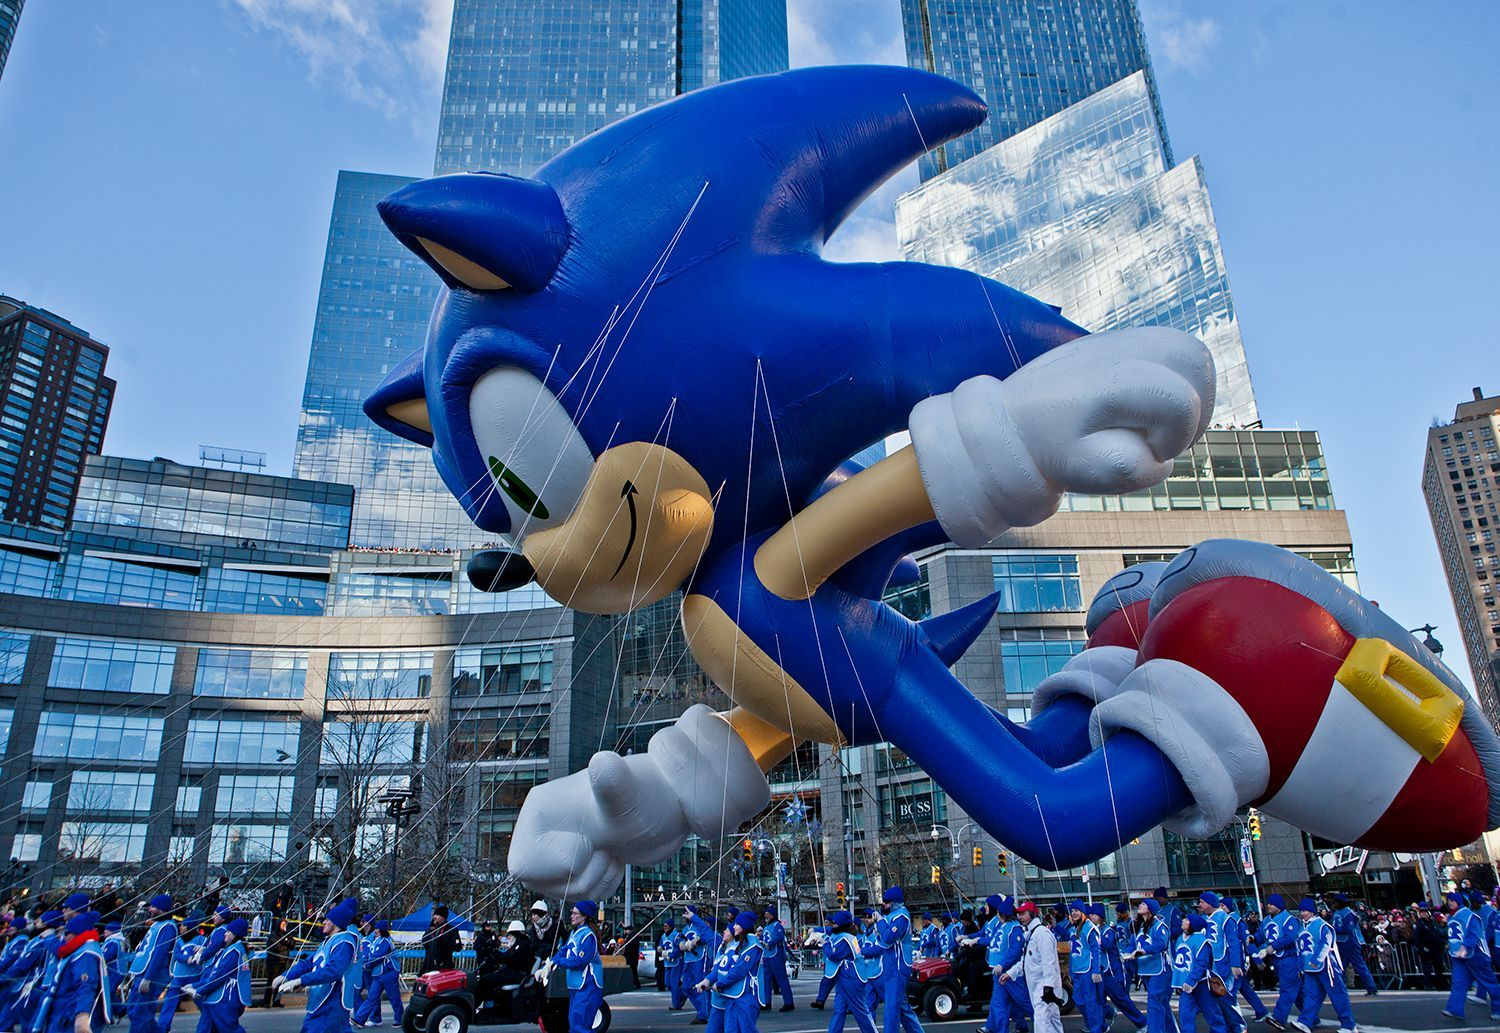 How To Have The Most Fun At The Macy S Thanksgiving Day Parade Macy S Thanksgiving Day Parade Thanksgiving Day Parade Thanksgiving Parade